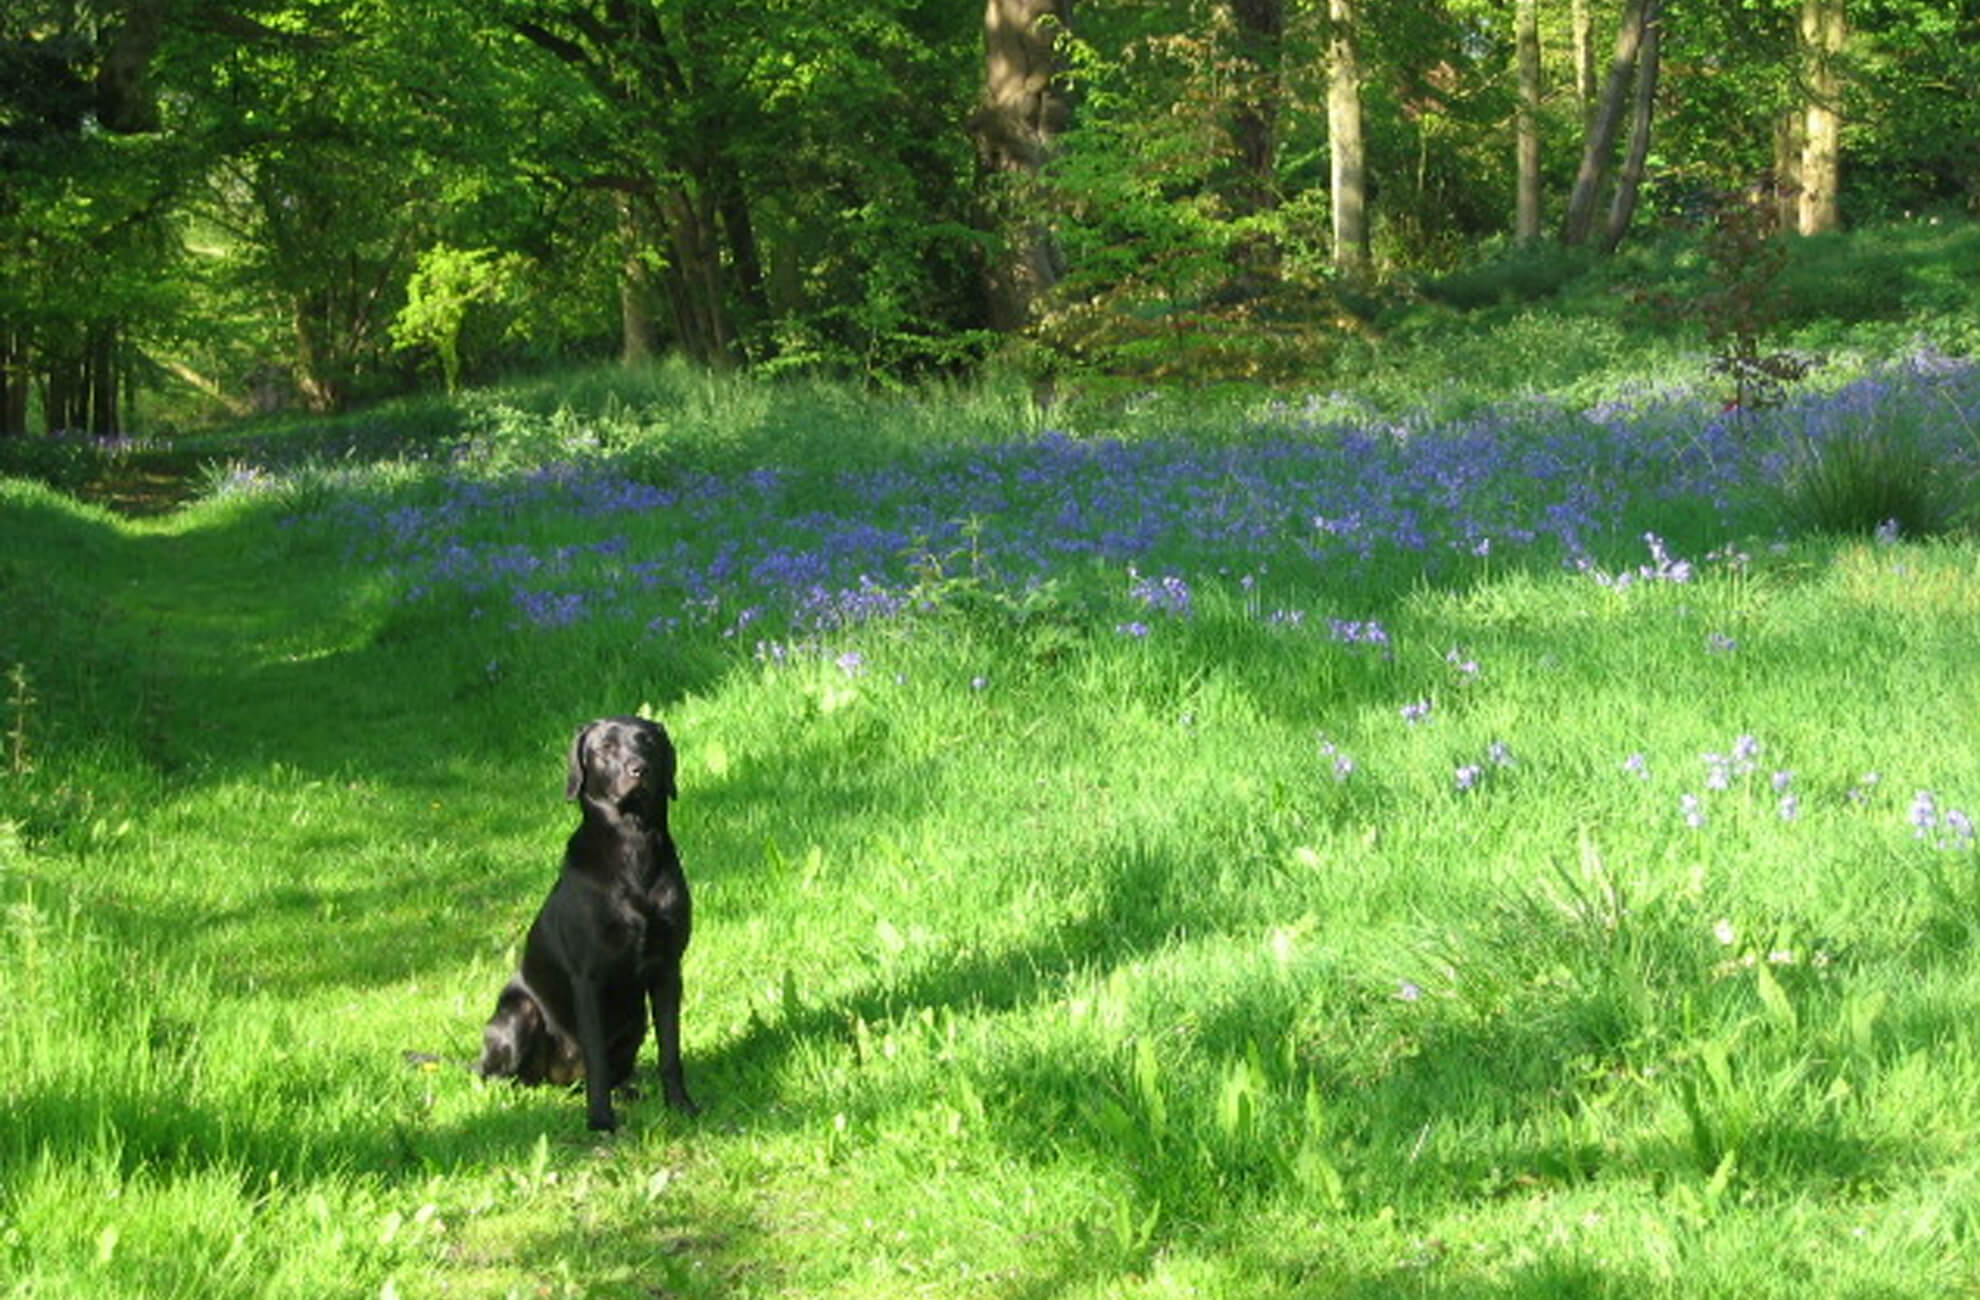 A gorgeous black Labrador sits patiently amongst the bluebells at Combermere Abbey